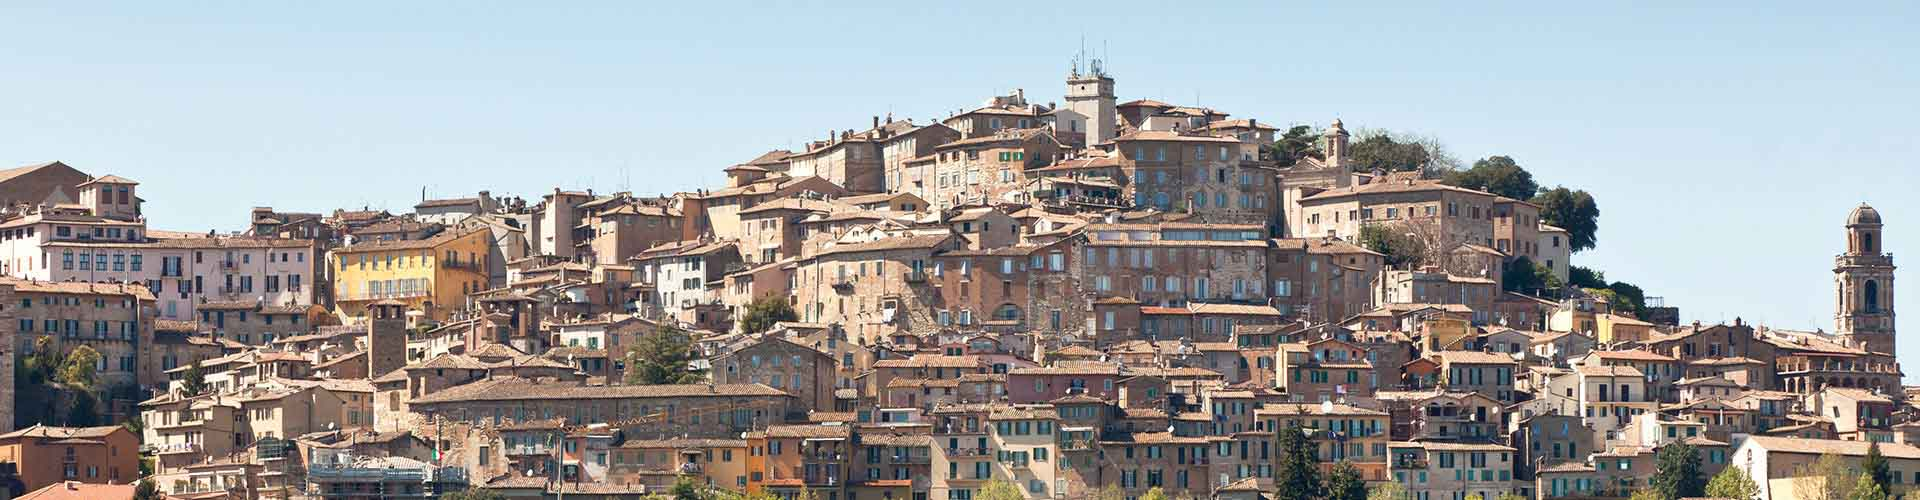 Perugia – Hostels in Perugia. Maps for Perugia, Photos and Reviews for each hostel in Perugia.